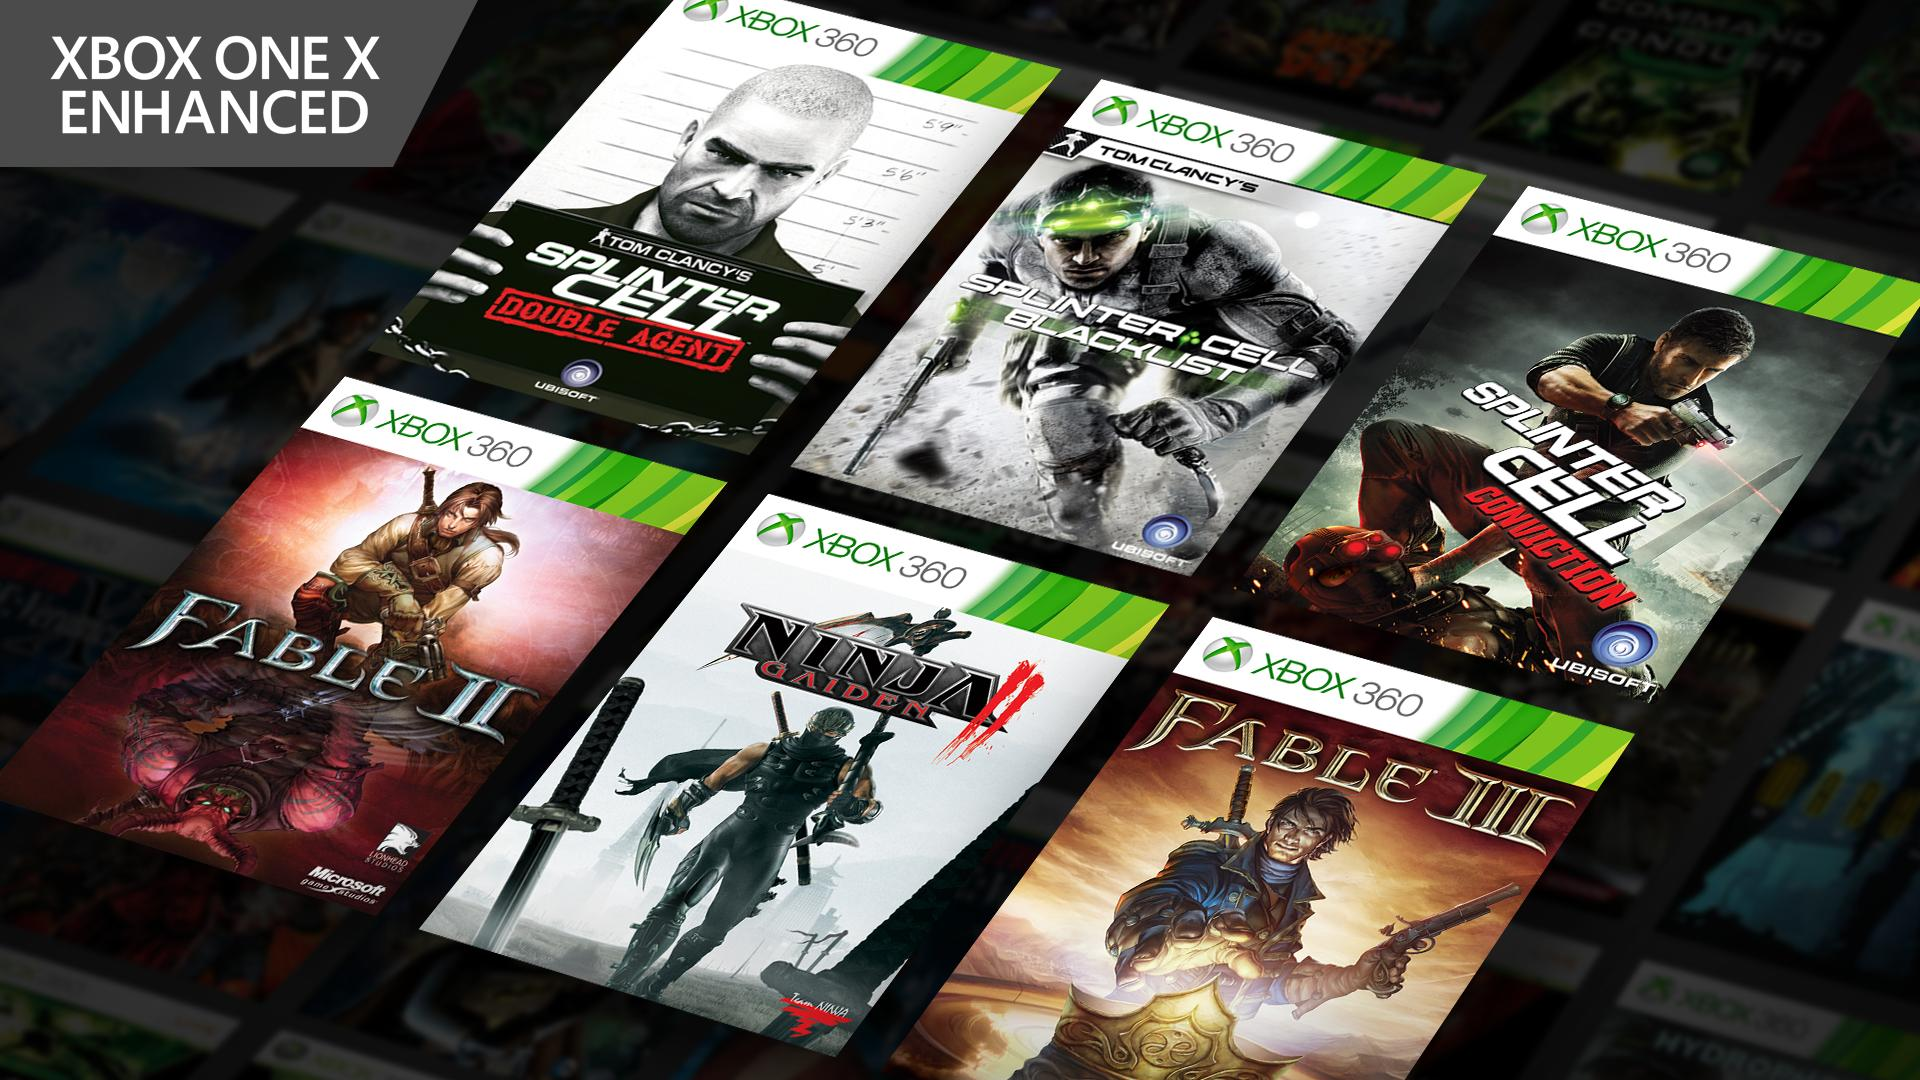 Xbox On Twitter Which Newly Enhanced Xbox 360 Game Are You